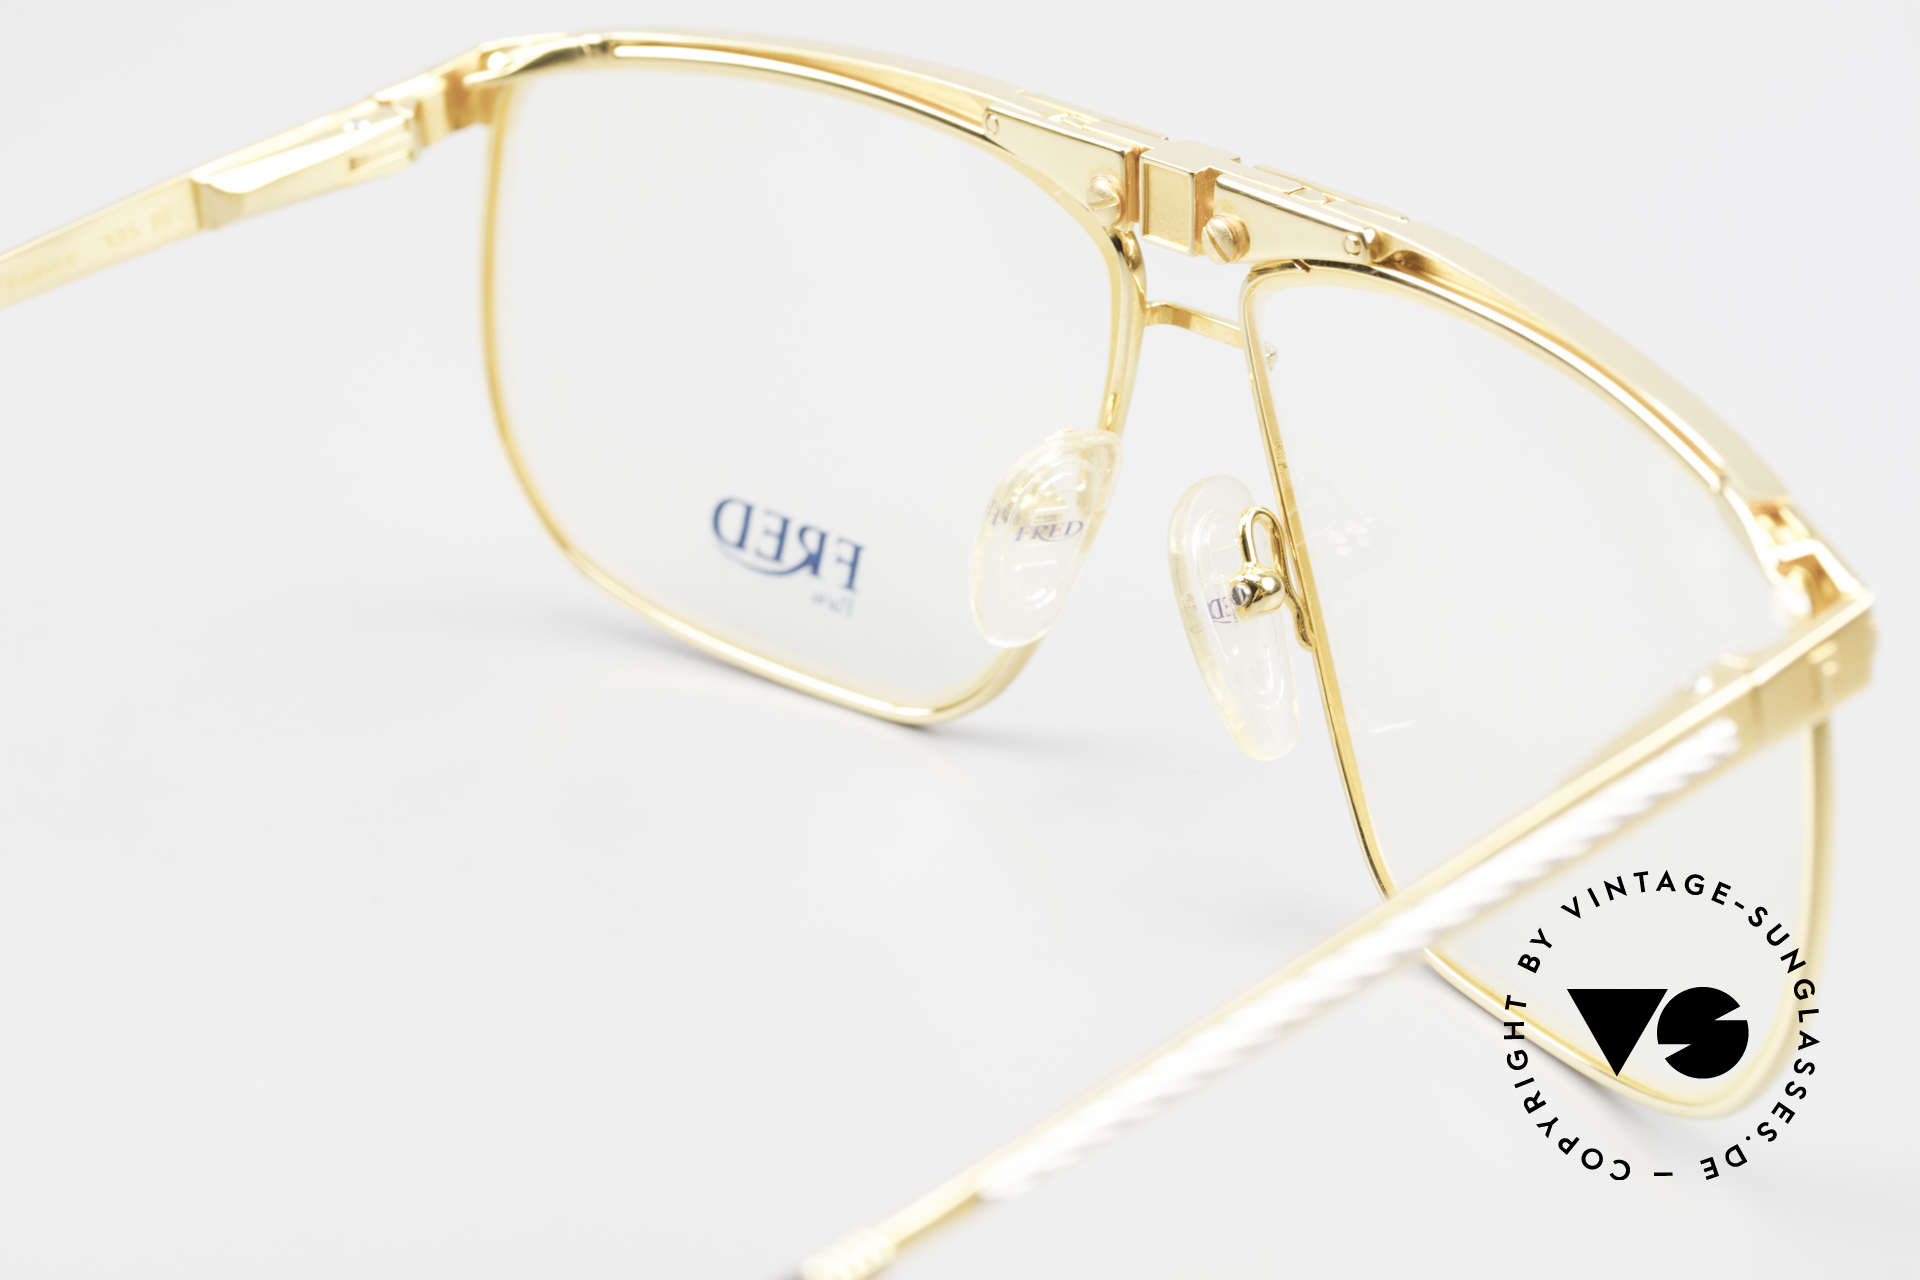 Fred Ocean Men's Luxury Glasses 22kt Gold, comes with a Fred box and a hard case by LONGINES, Made for Men